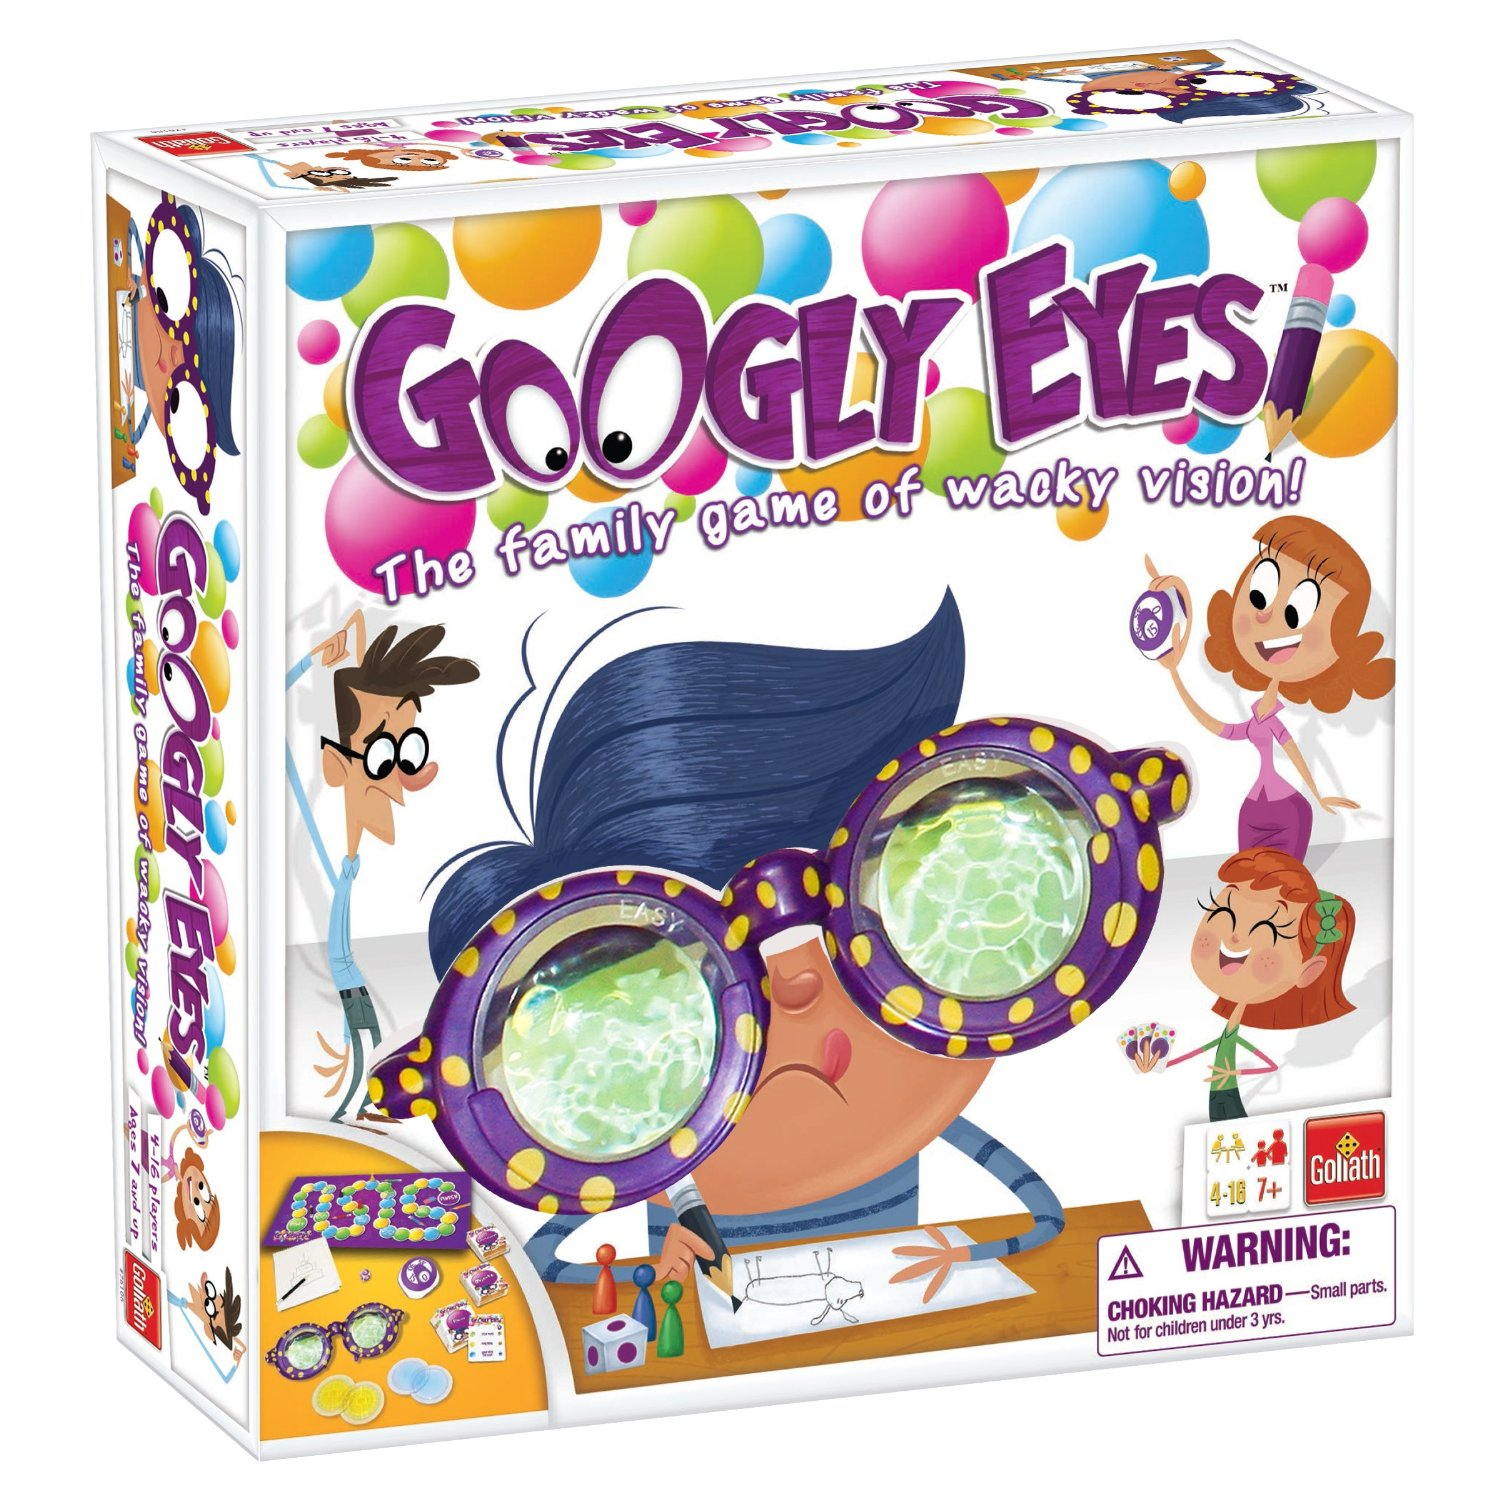 Top 101 Best Gifts For Your Girlfriend 2017 Gift Ideas: The Best Preschool Board Games